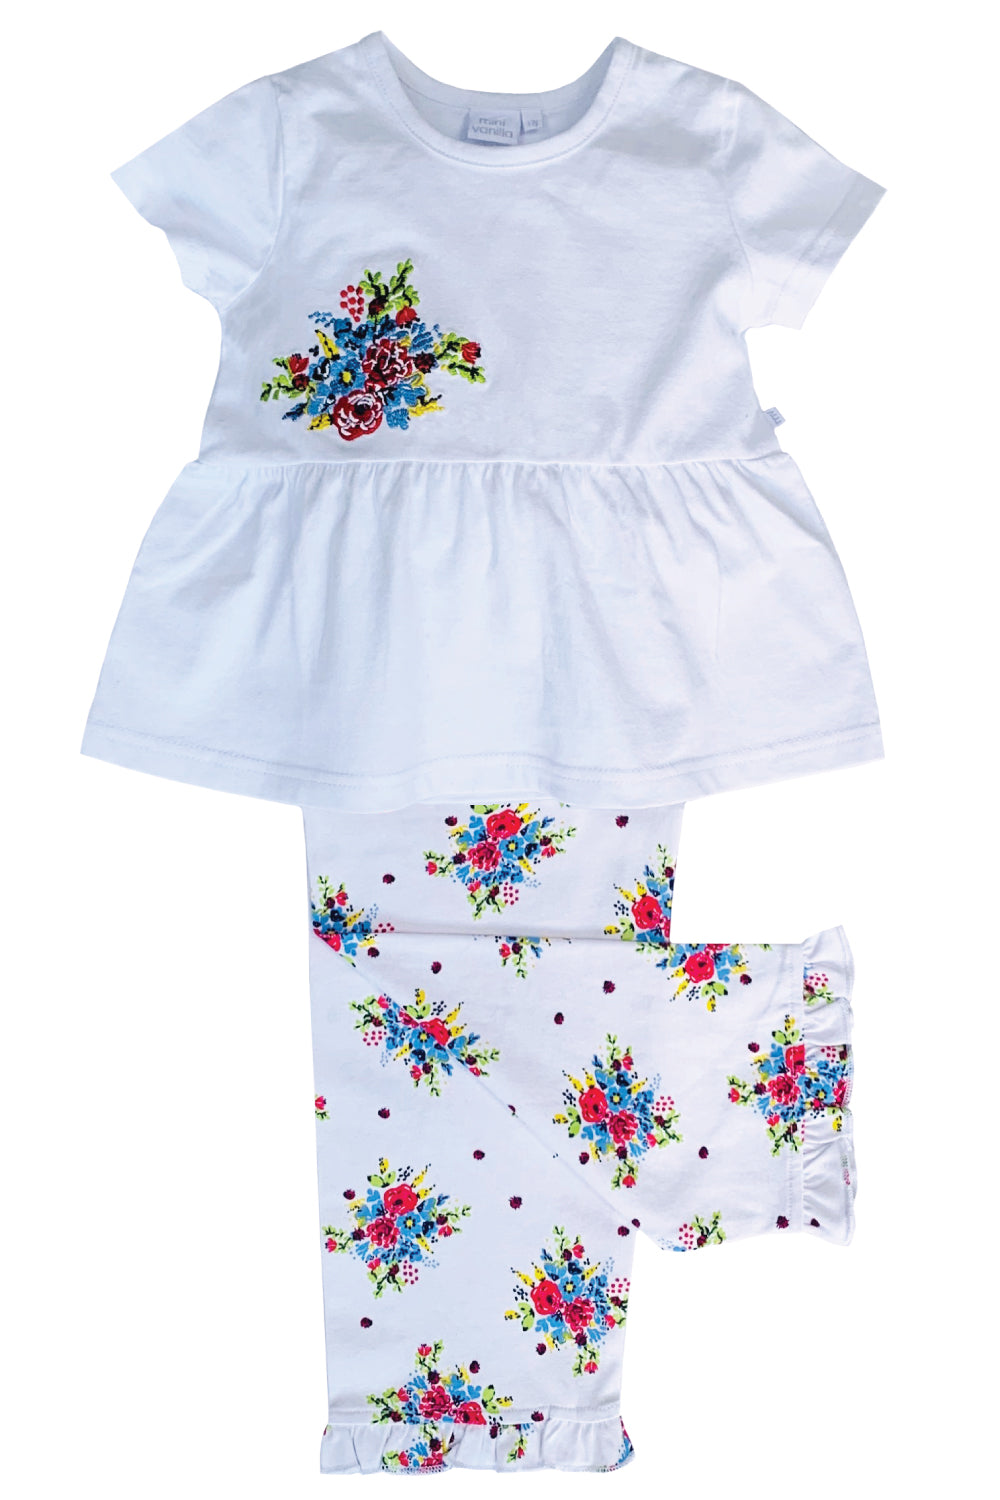 Summer Bouquet print pyjamas for Girls aged 1-10 Years - MV 2323